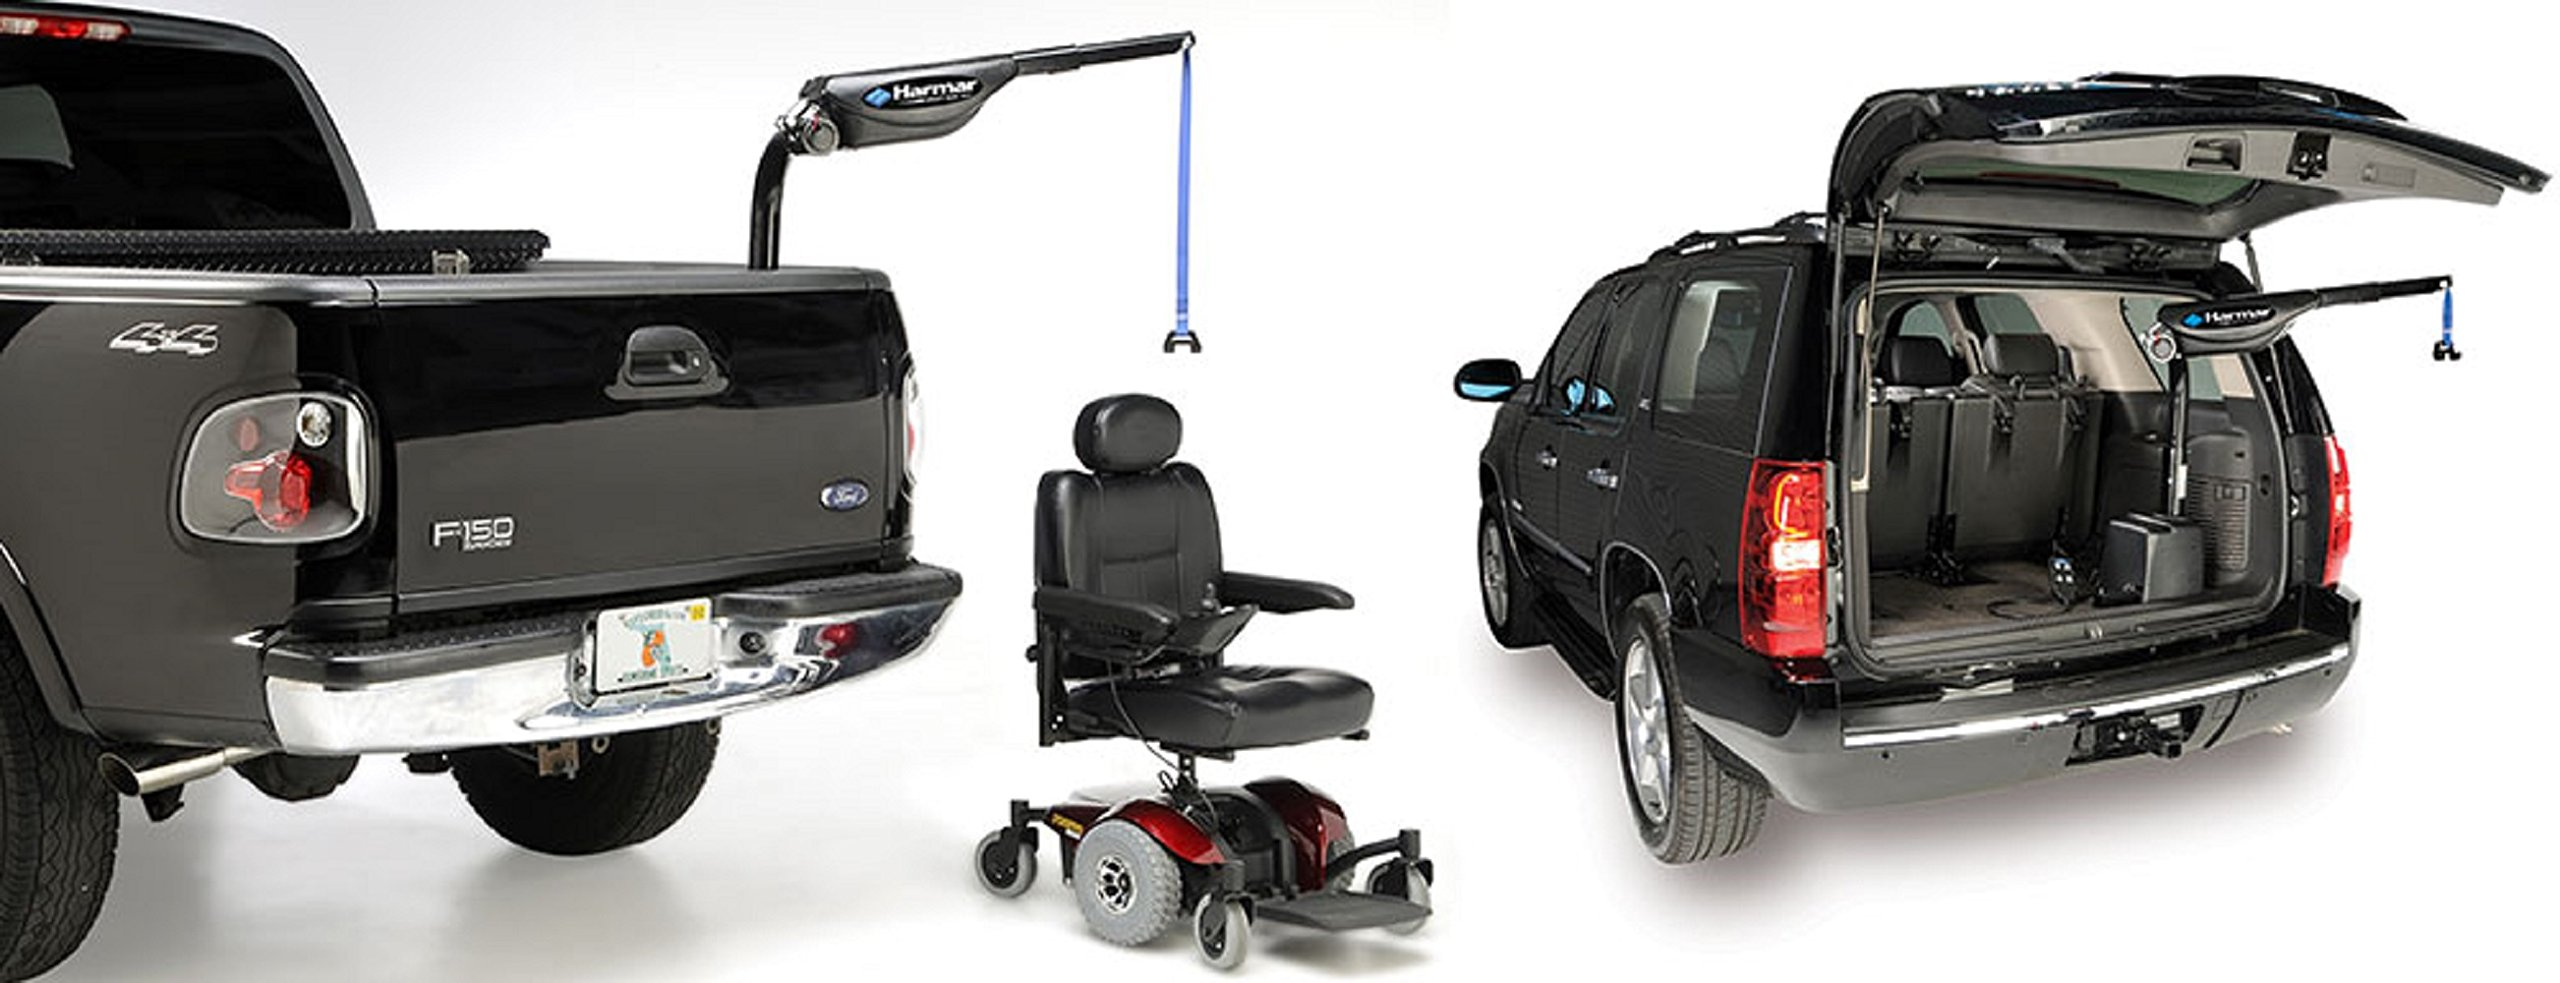 Harmar Mobility AL435 Scooter & Wheelchair inside Carrier with Mounting Kit & Wiring Harness & Swing-Away Axis